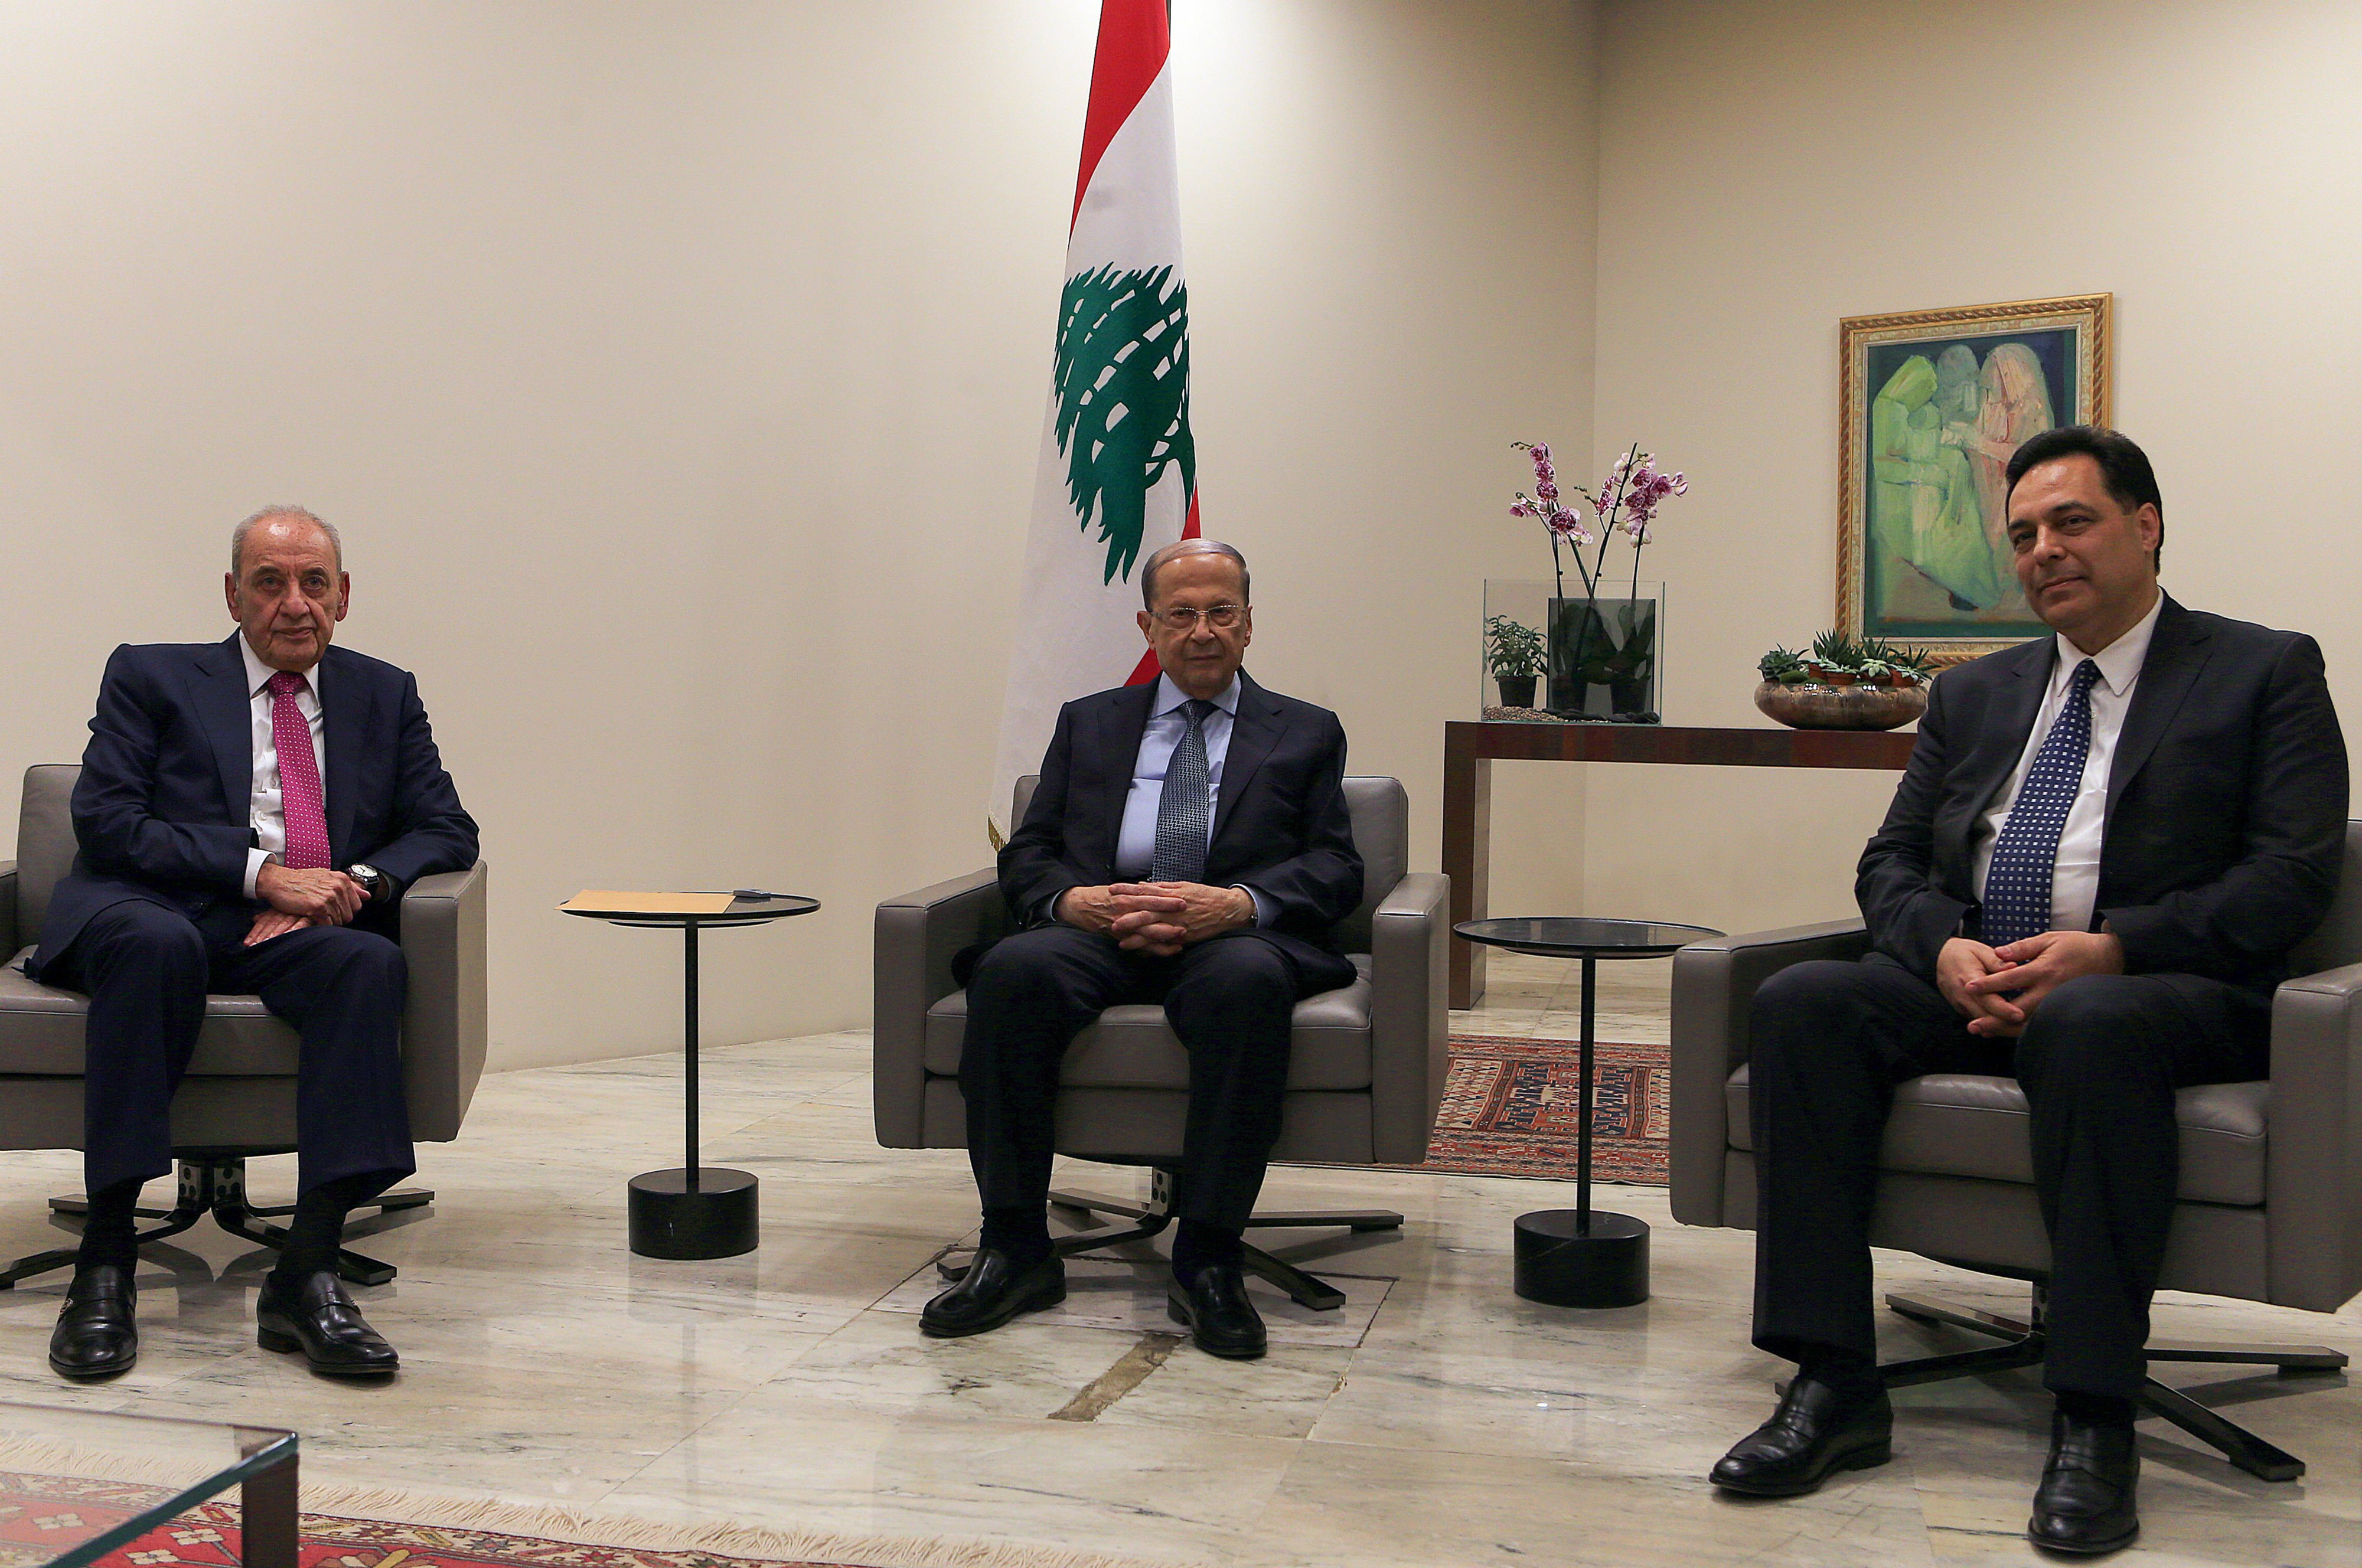 Lebanese President Michel Aoun (C) meets with Prime Minister-designate Hassan Diab (R) and Parliament Speaker Nabih Berri at the presidential palace in Baabda (AFP)